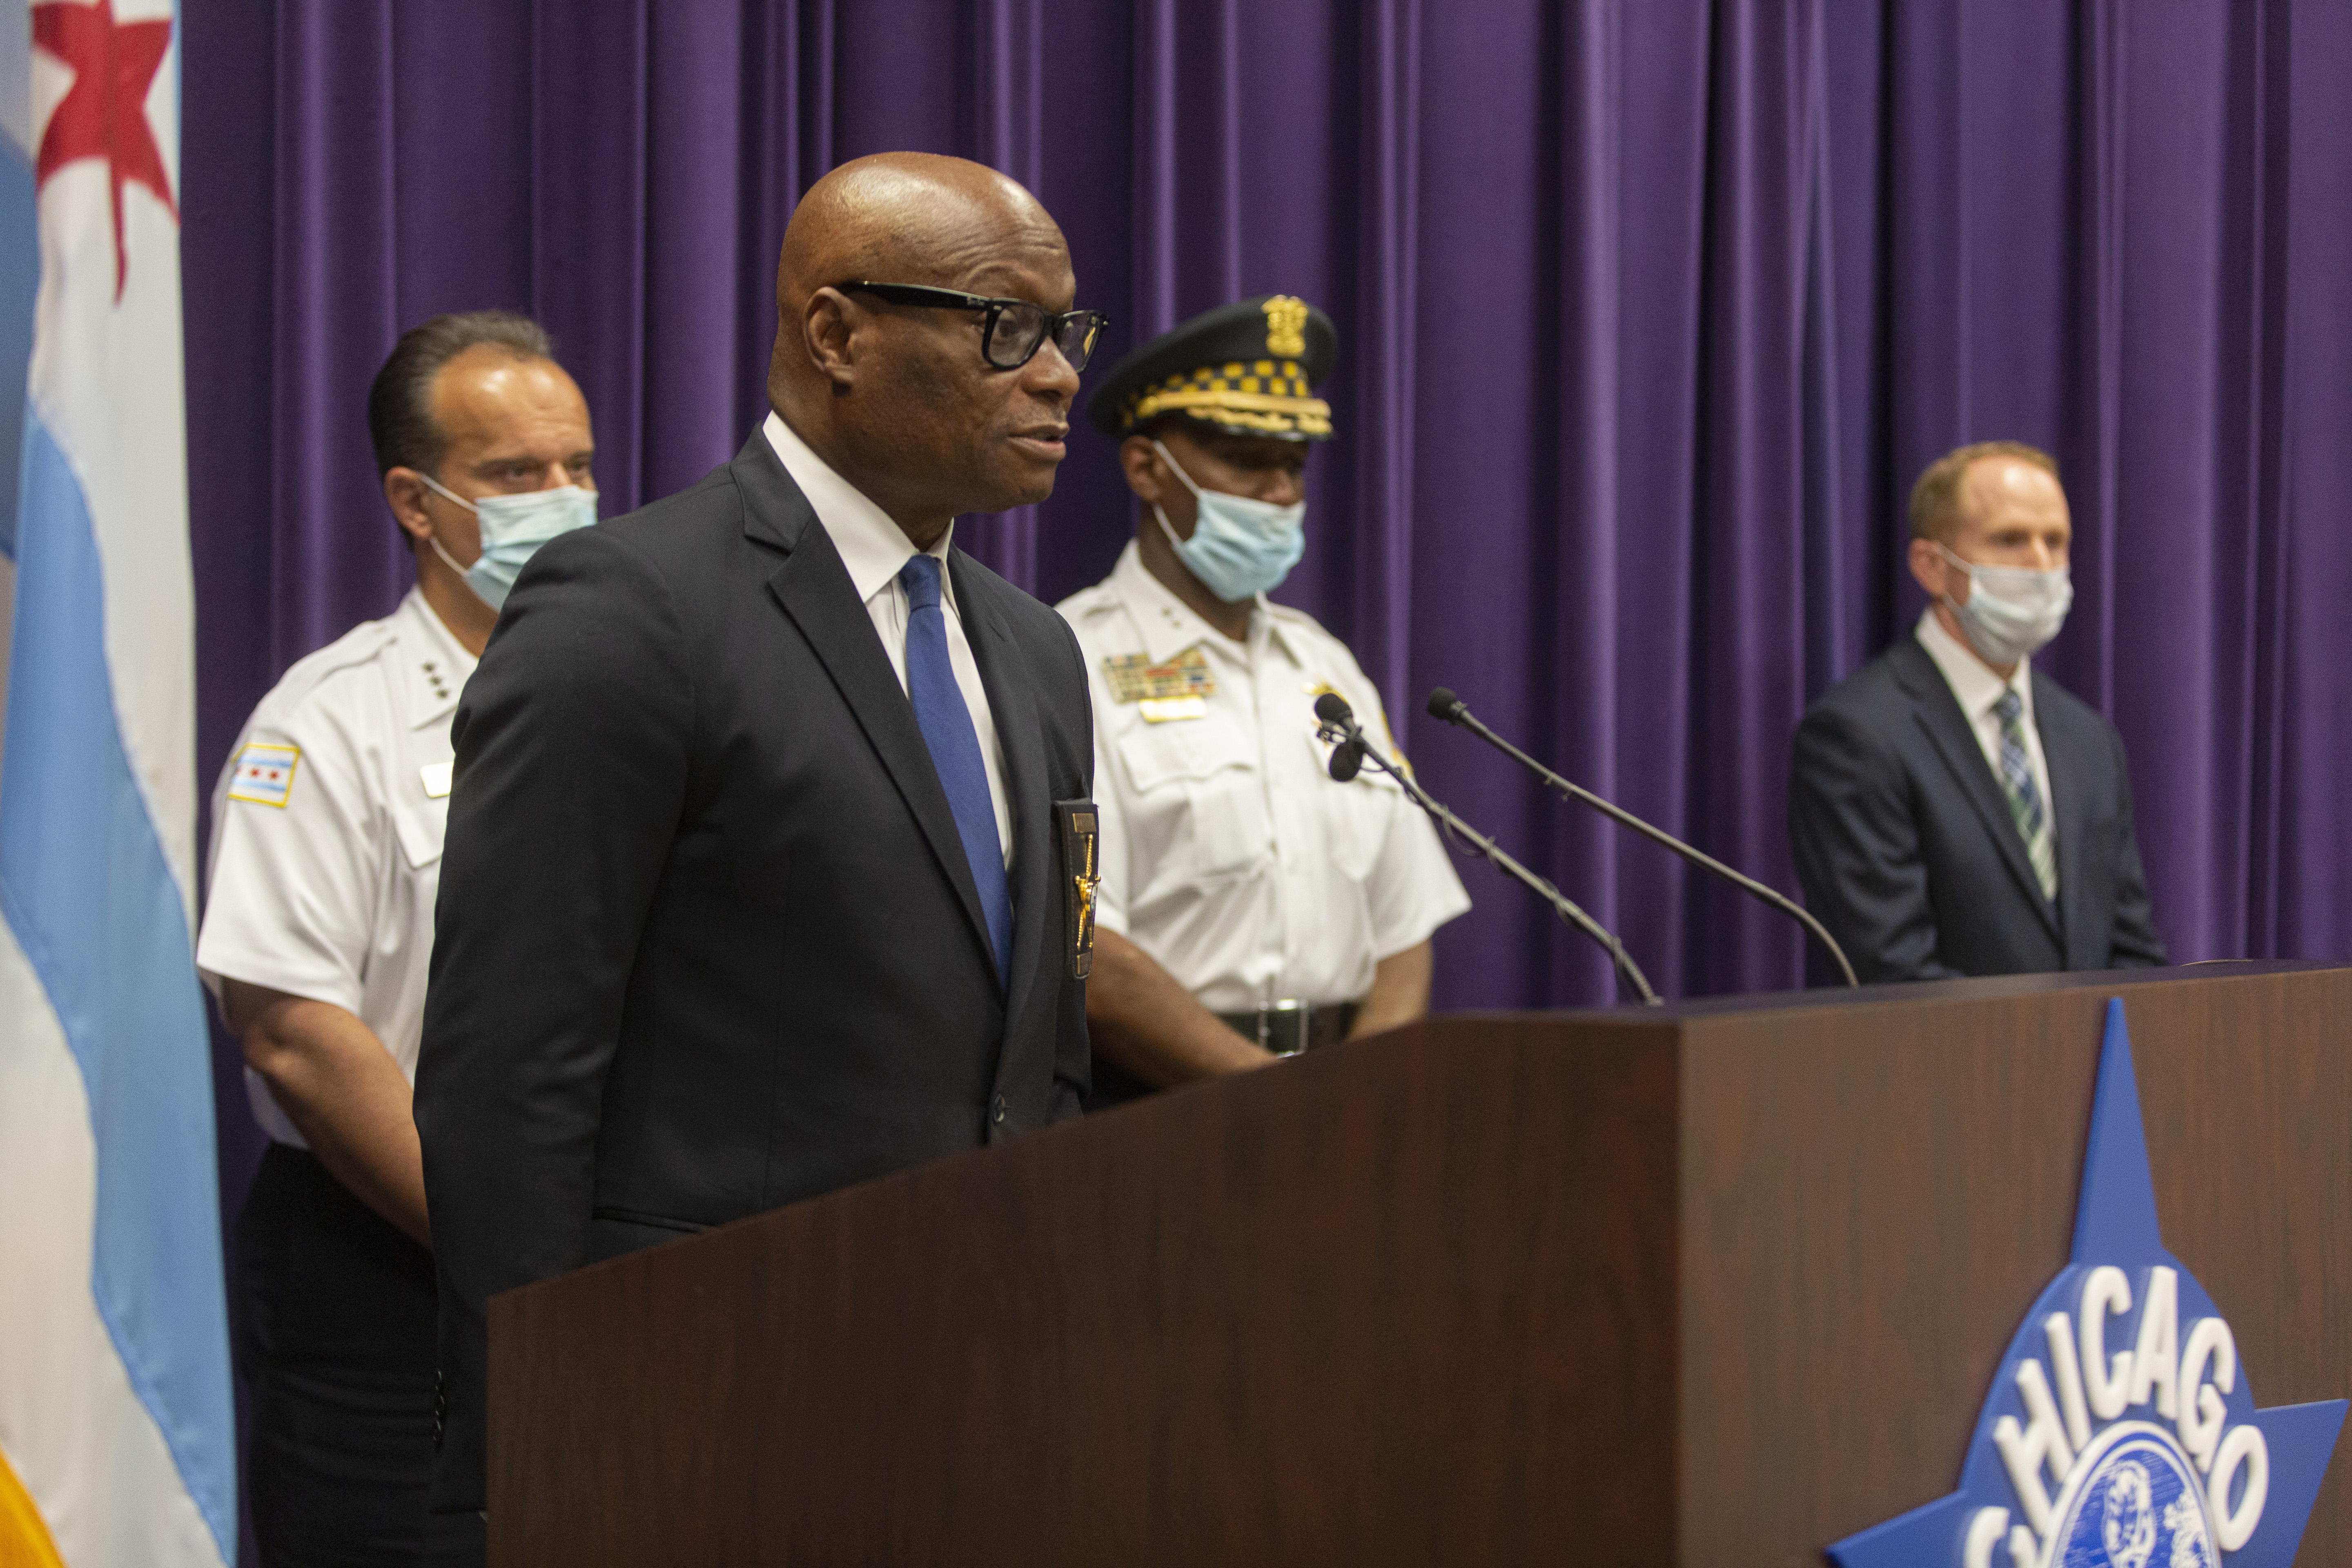 Chicago Police Supt. David Brown at a news conference in 2020.